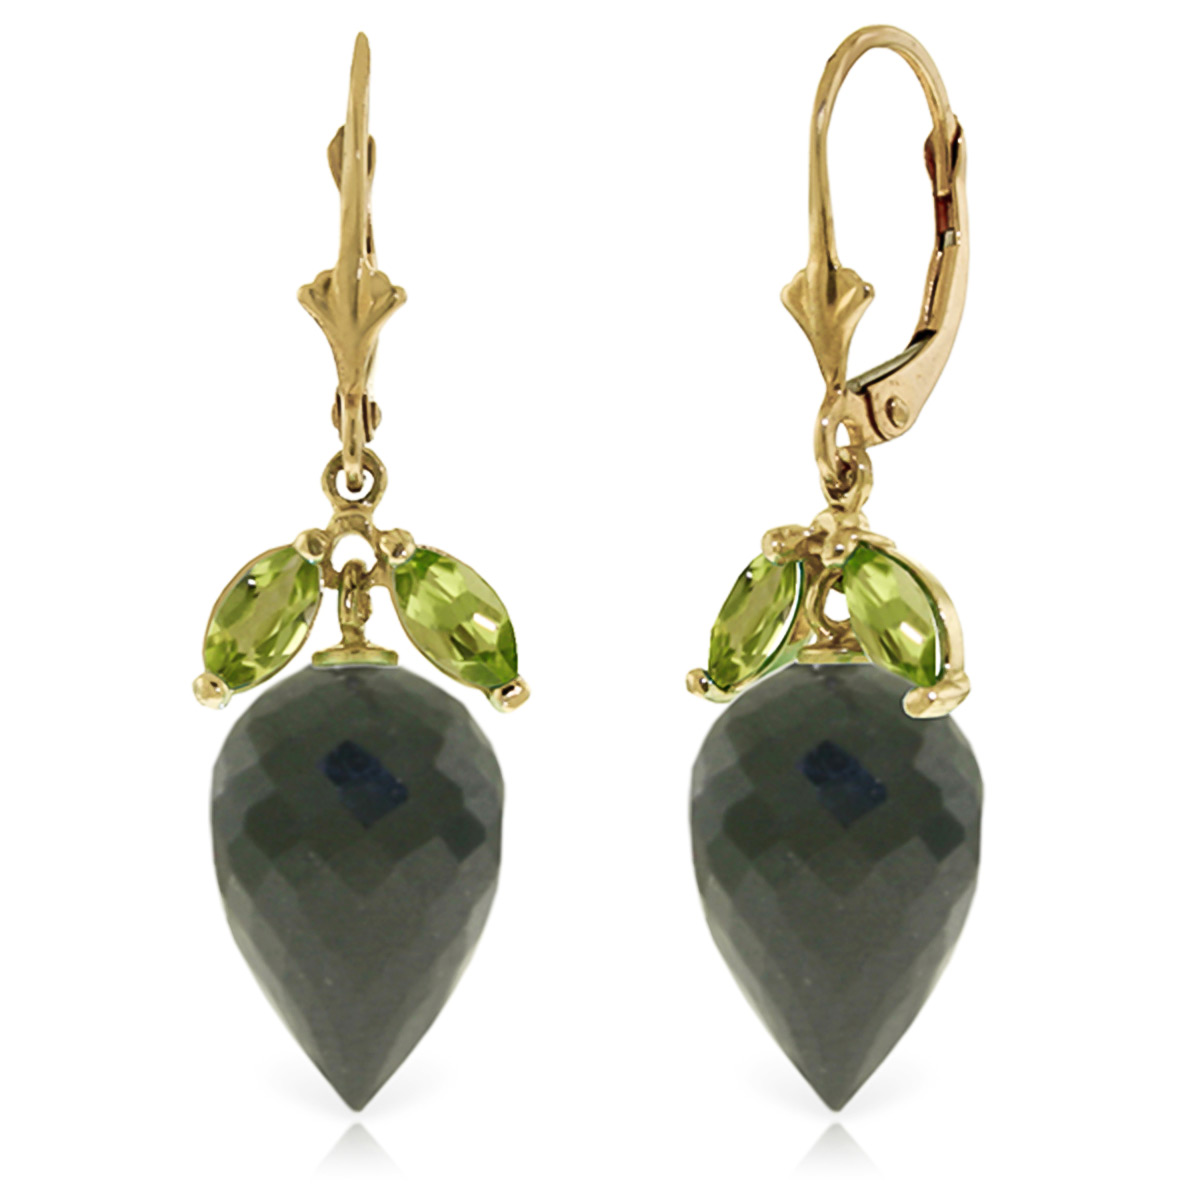 Black Spinel and Peridot Drop Earrings 25.5ctw in 9ct Gold